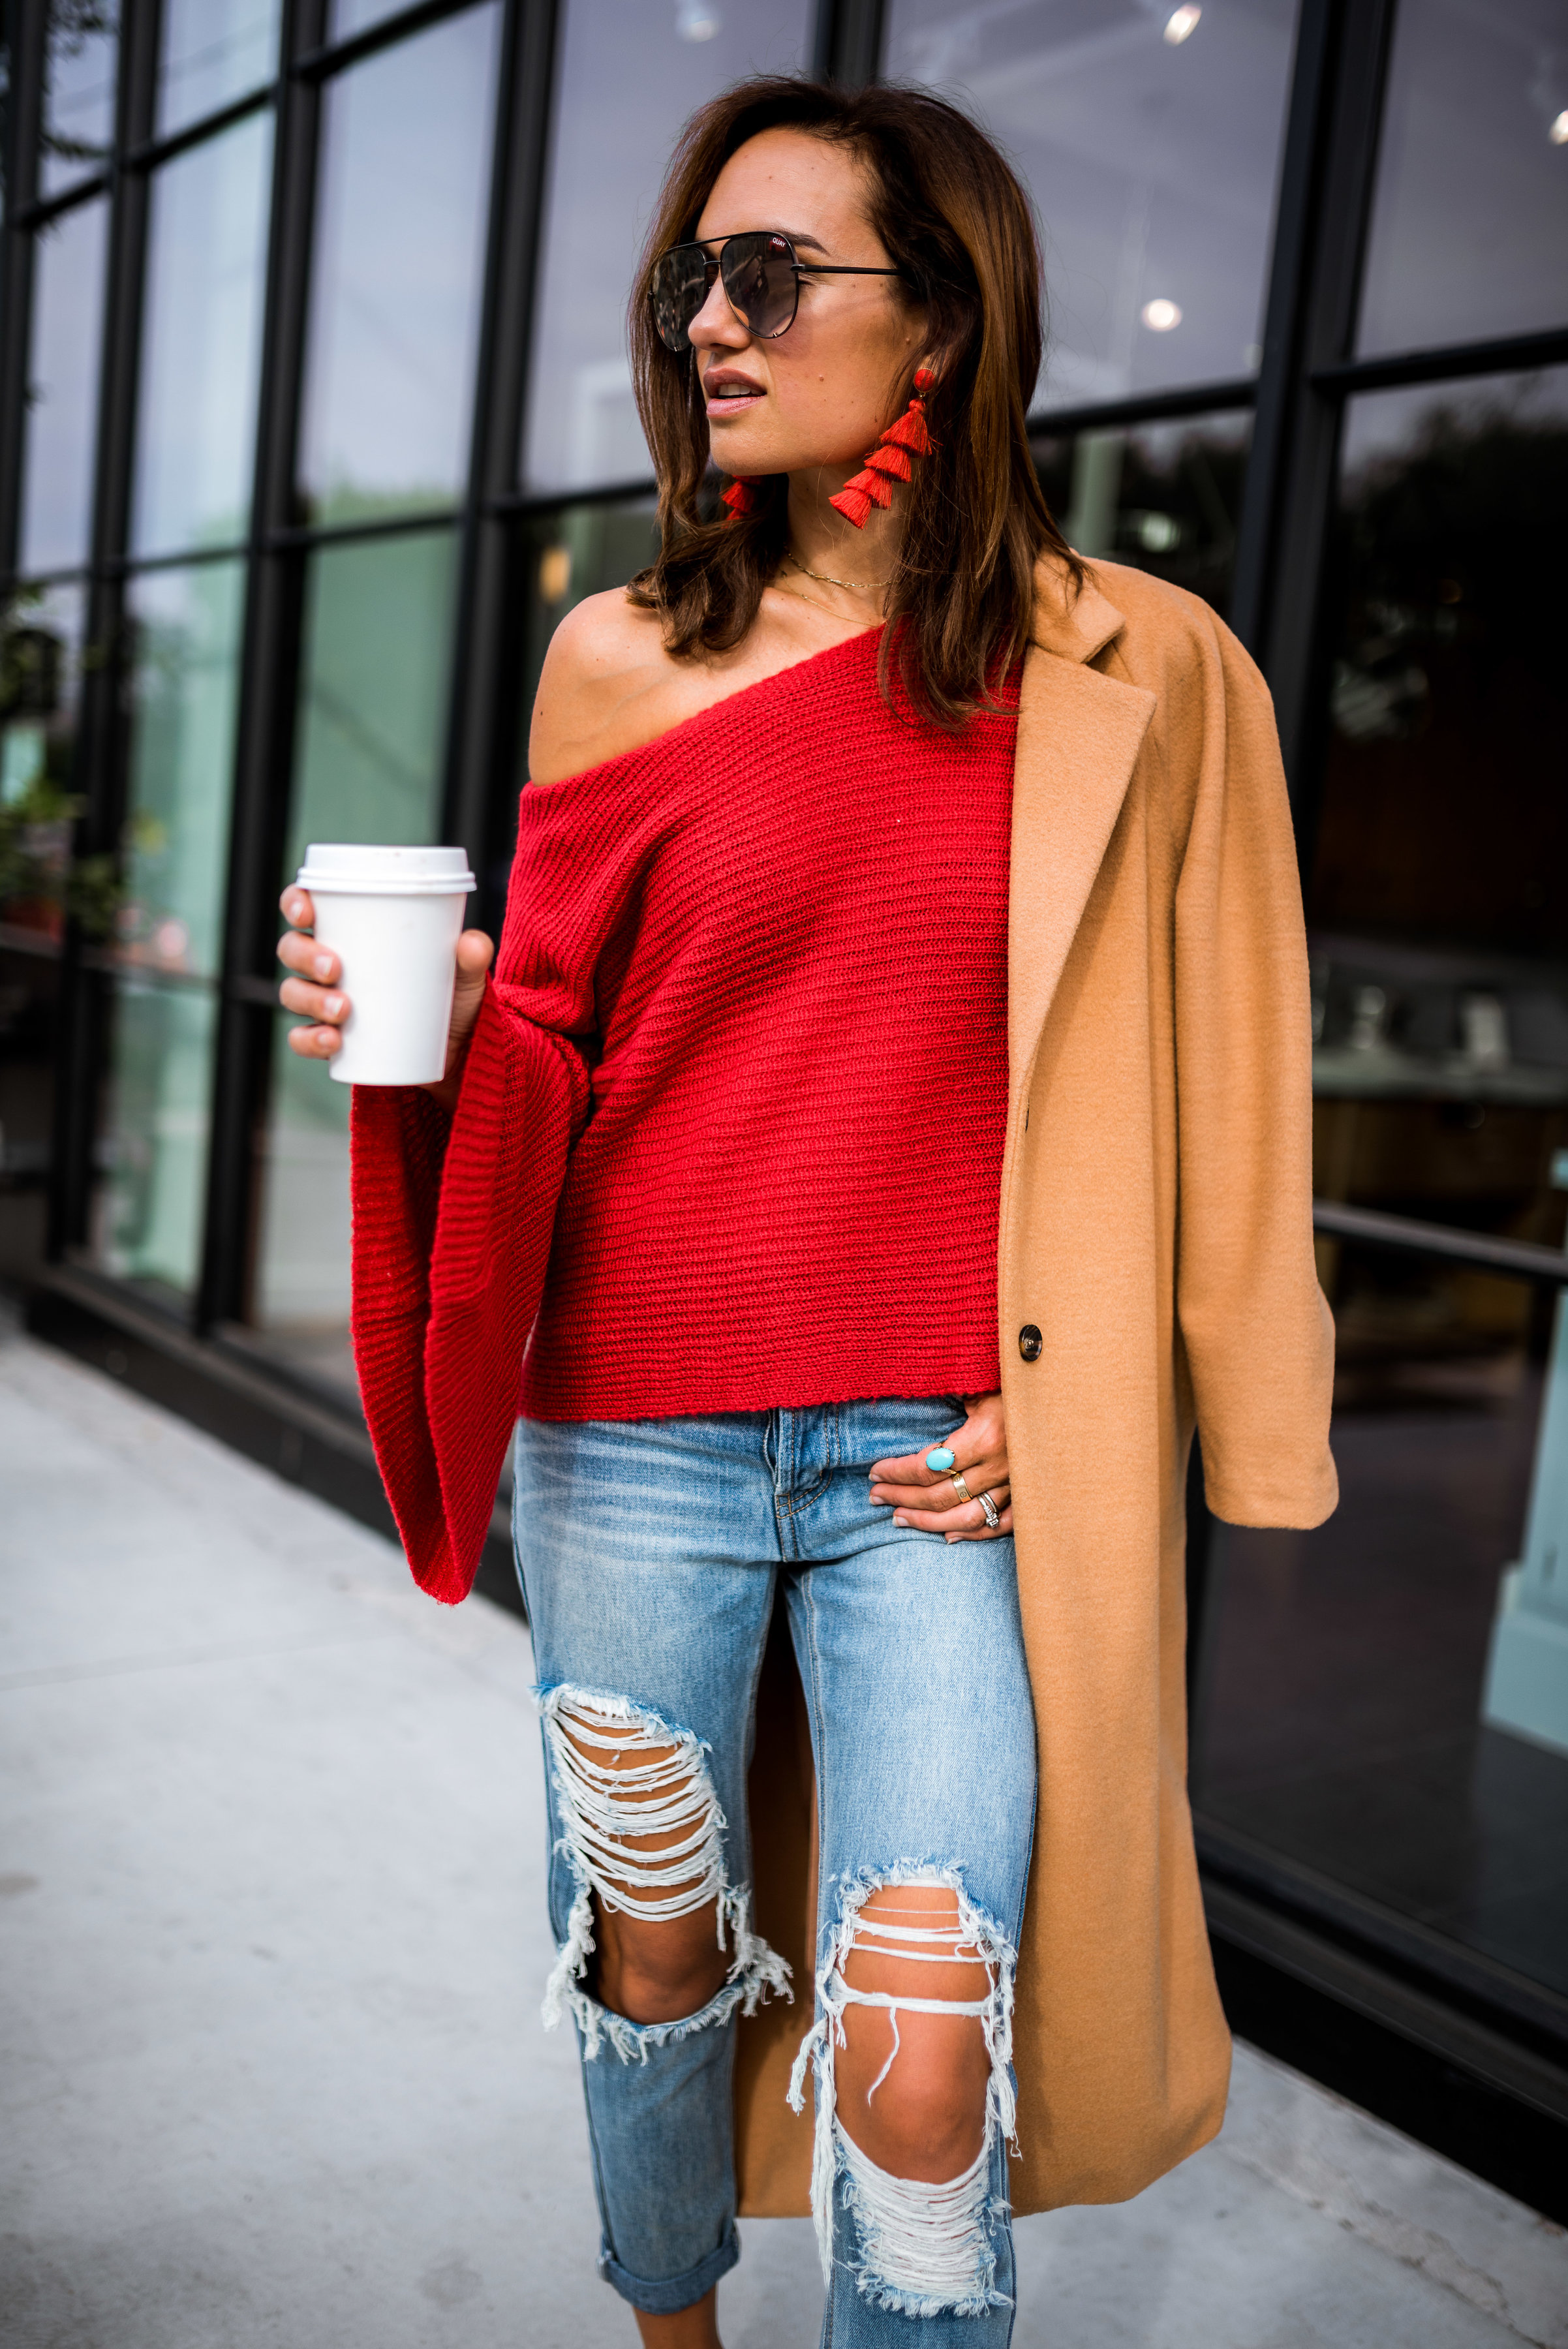 The Cutest Red Sweater Under $40 - Shalice Noel